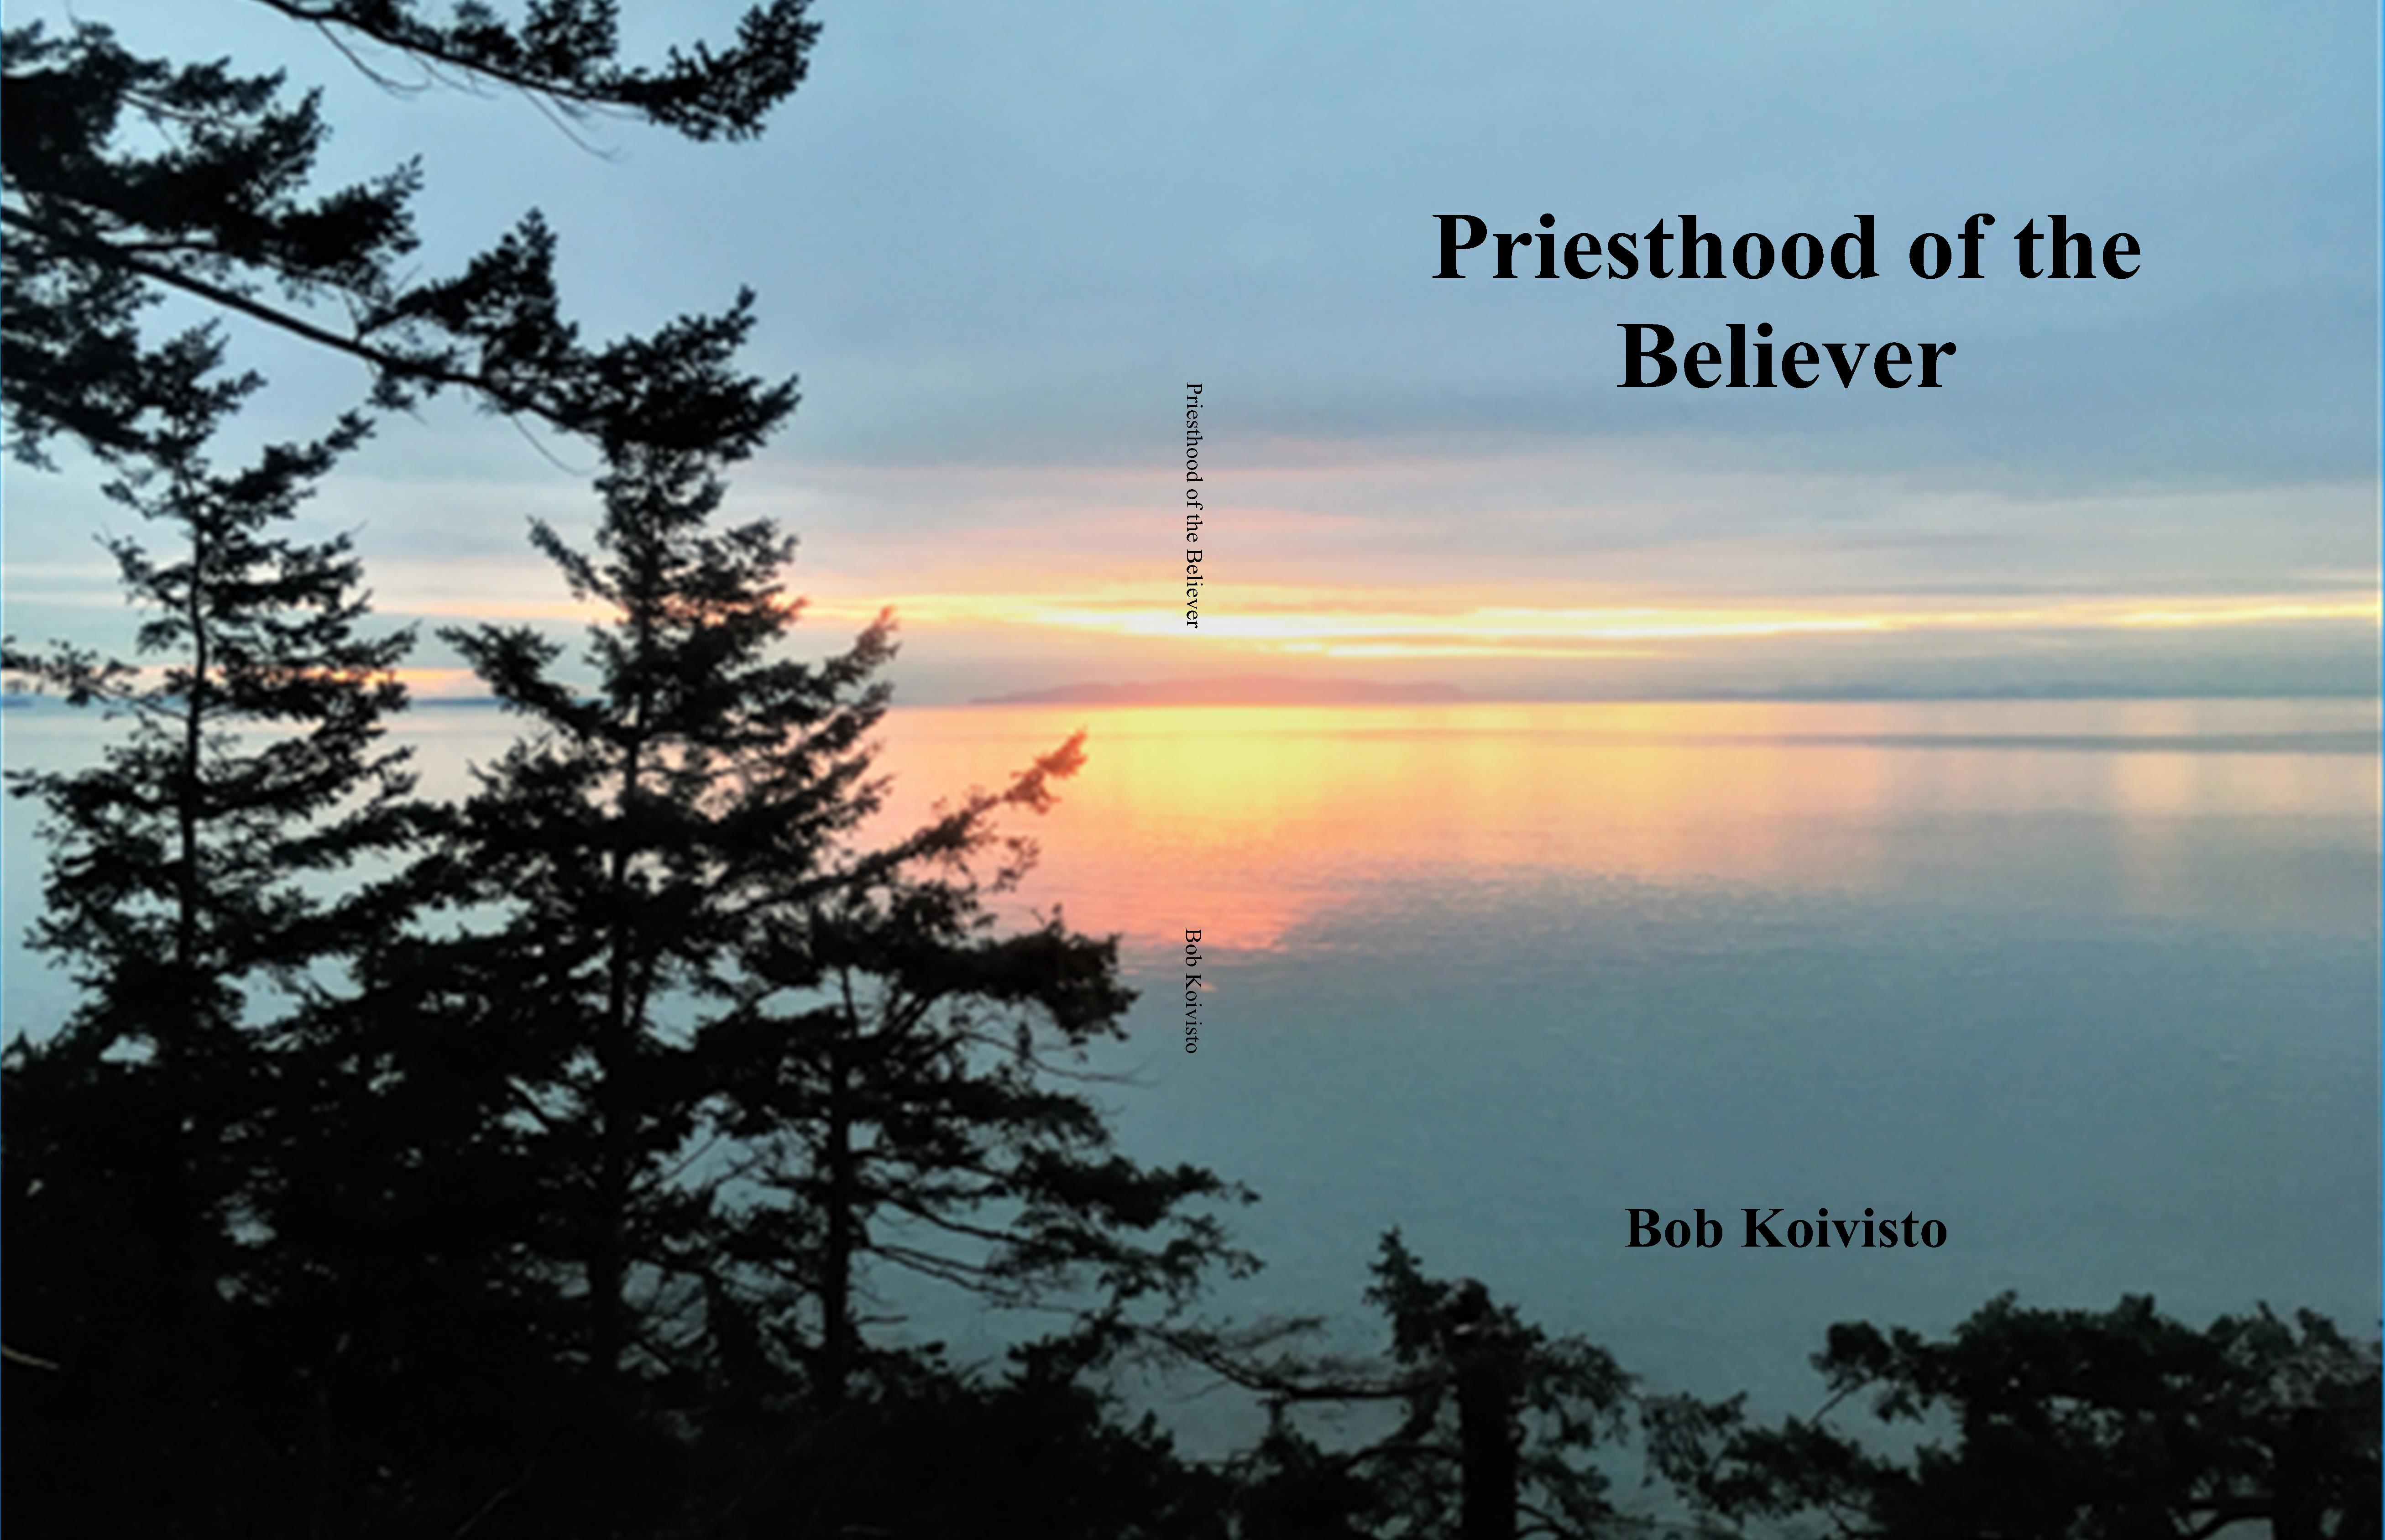 Priesthood of the Believer cover image